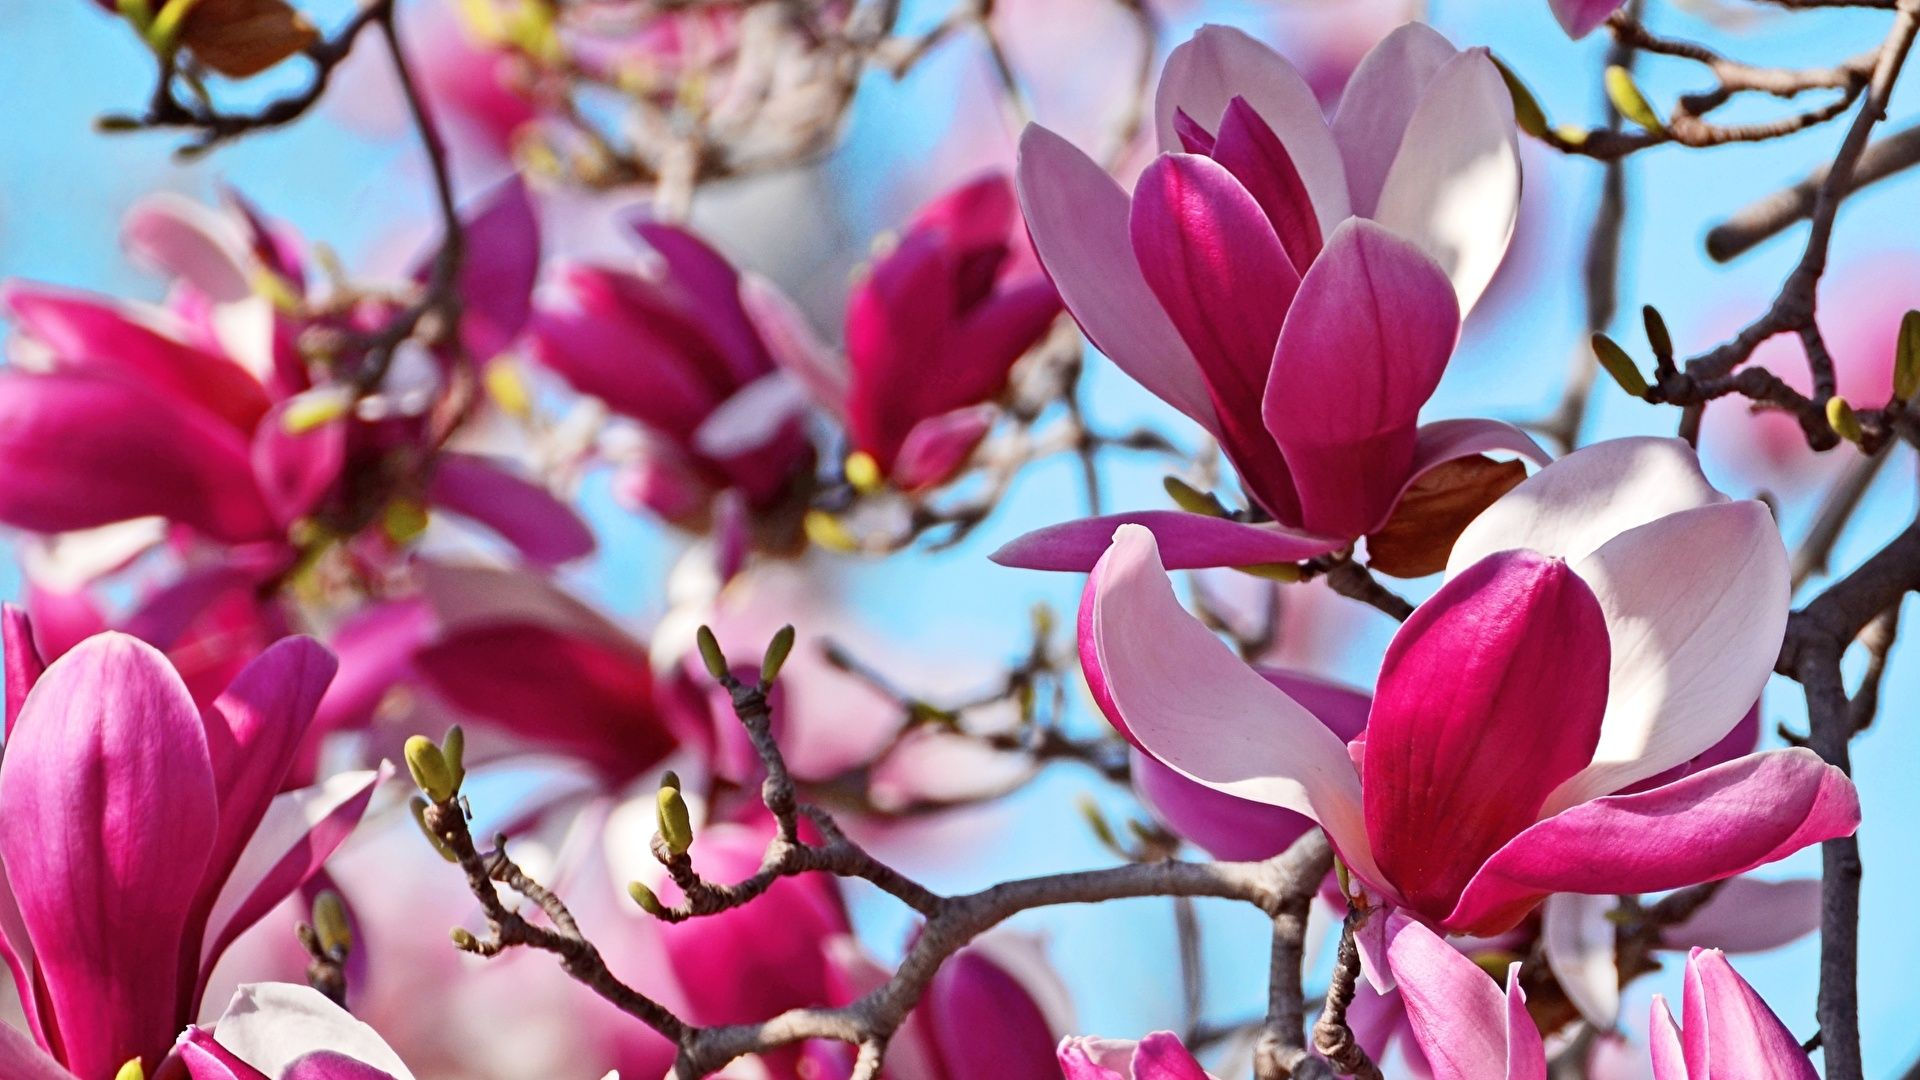 Magnolia Flowers Pictures